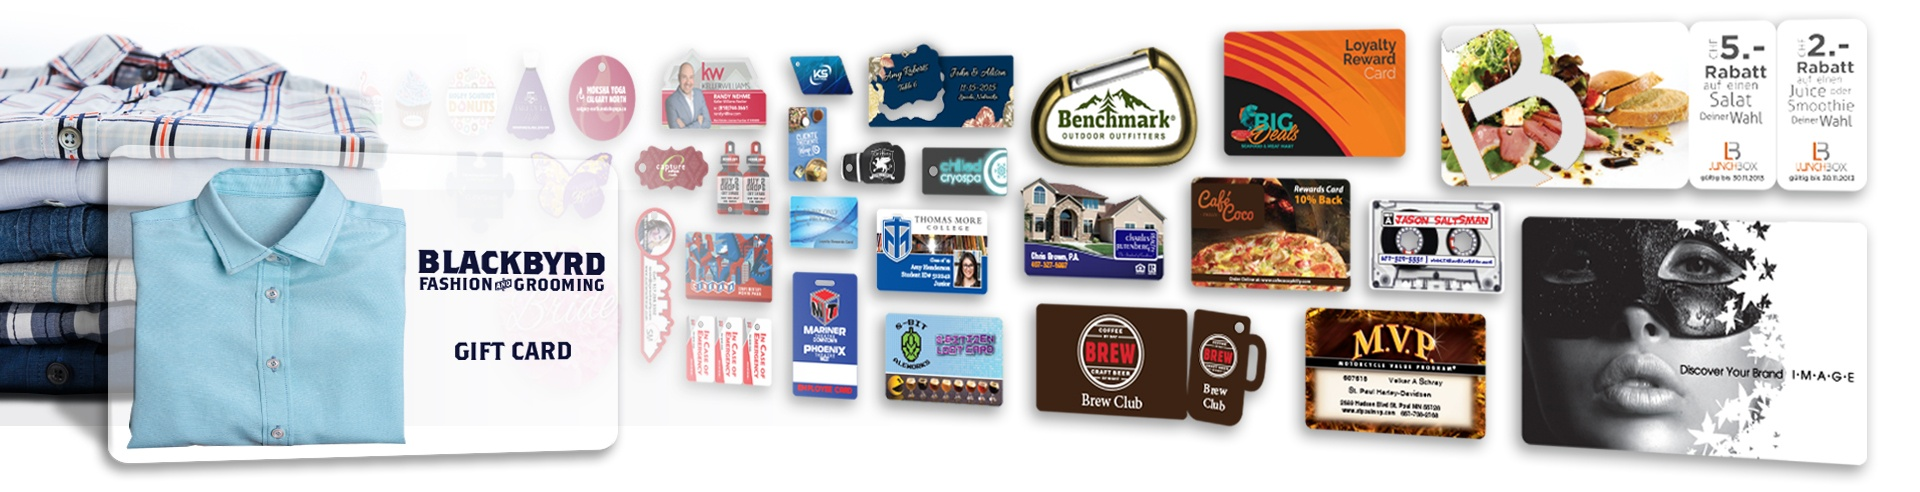 Custom printed unique custom plastic business cards, gift cards, combo cards, key tags, custom shape, die cut cards